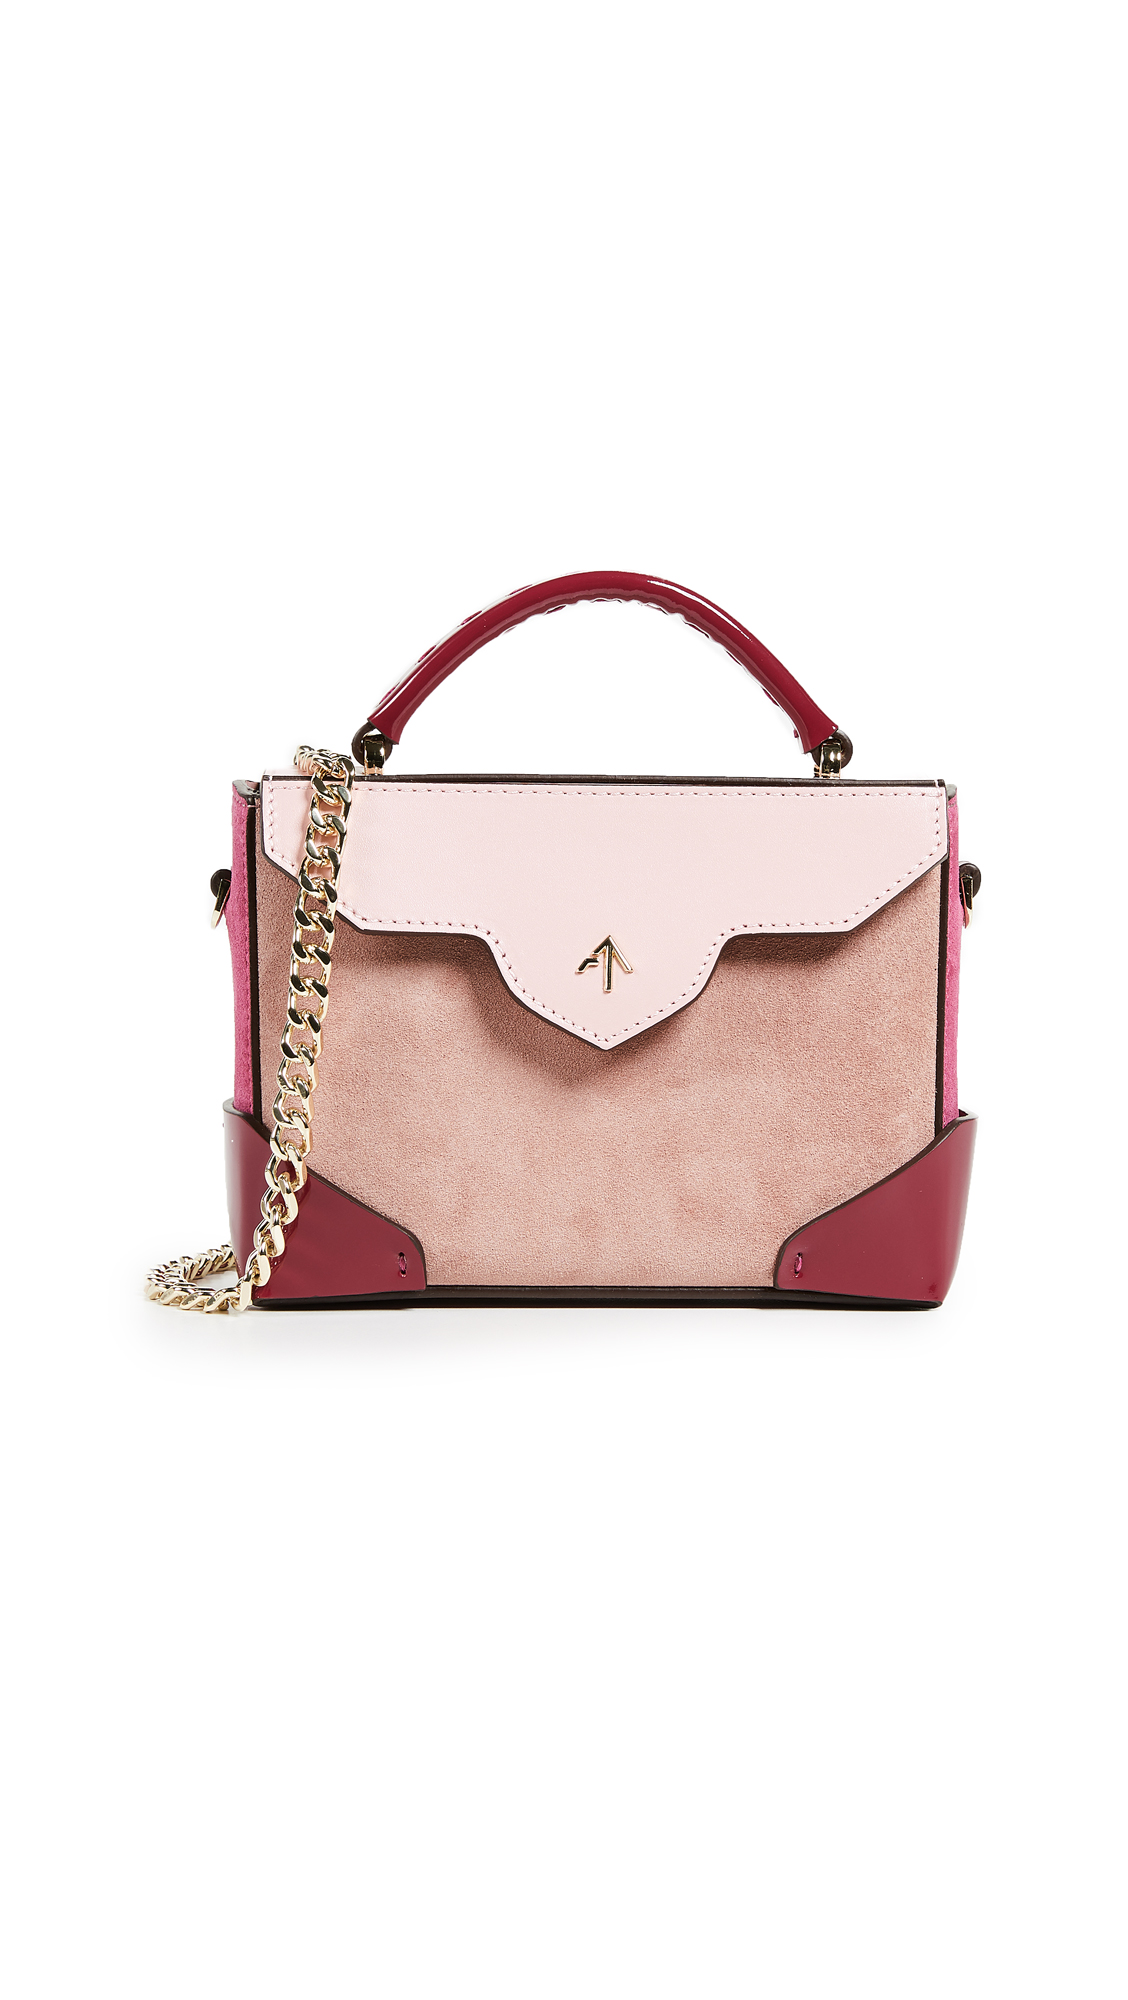 MICRO BOLD COMBO TOP HANDLE BAG WITH GOLD CHAIN